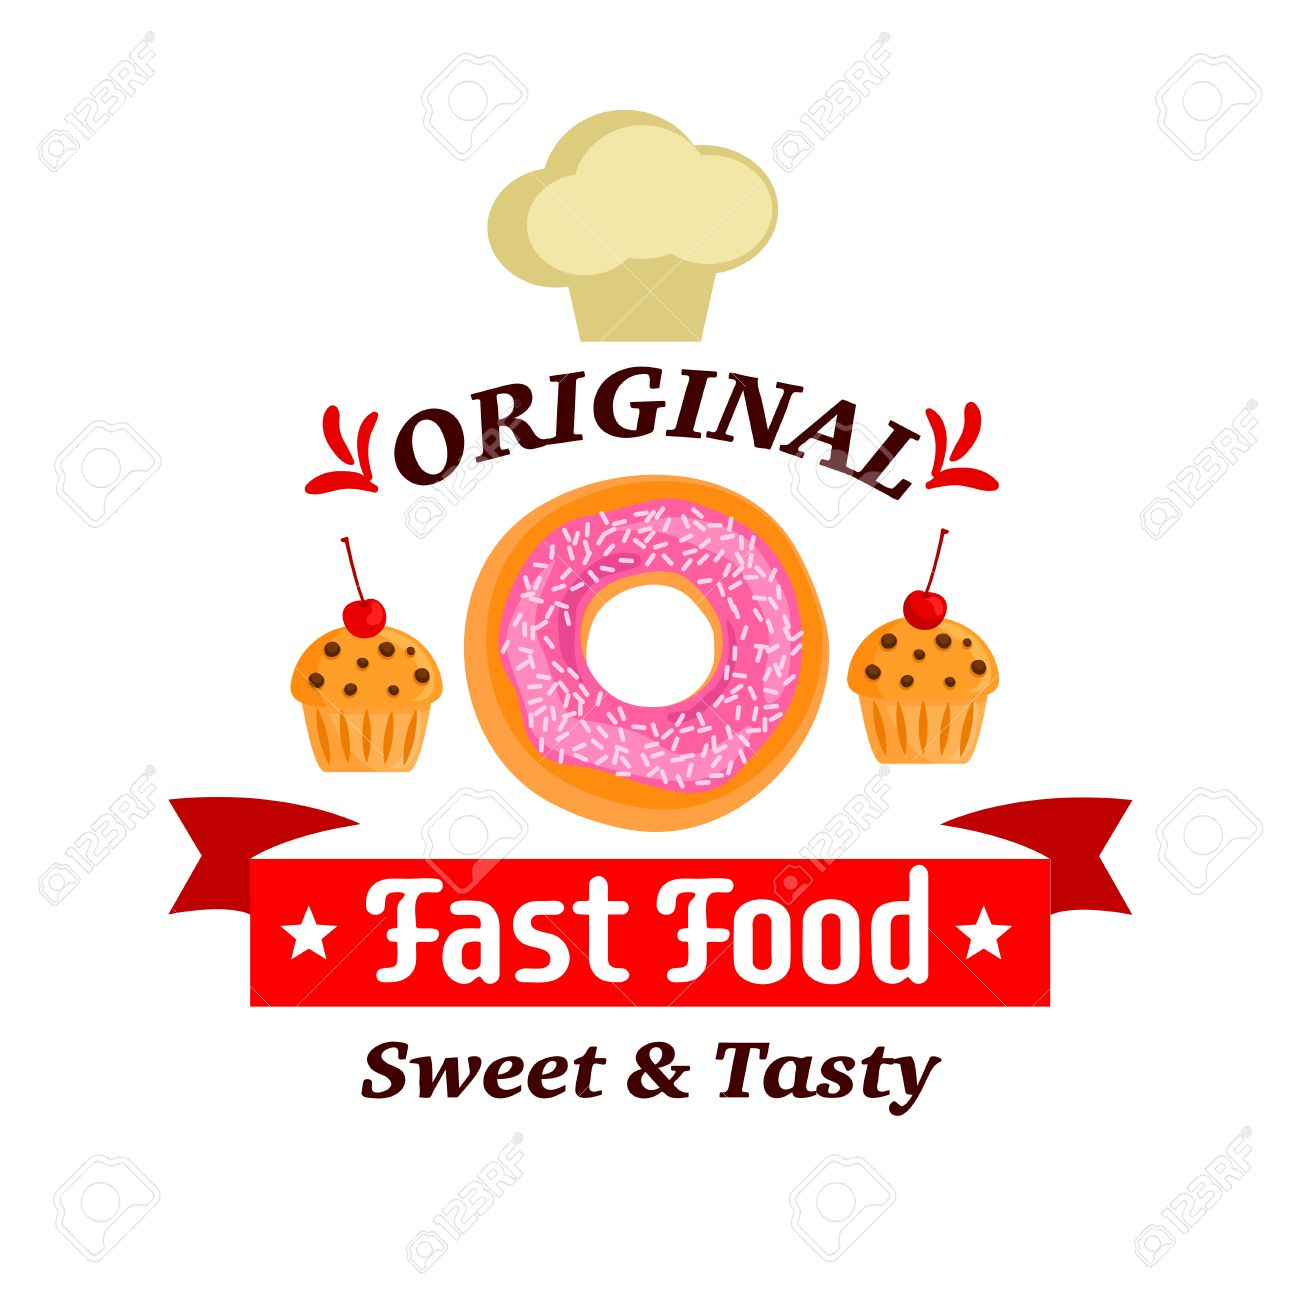 fast food desserts label donut muffin and chef cap vector icons